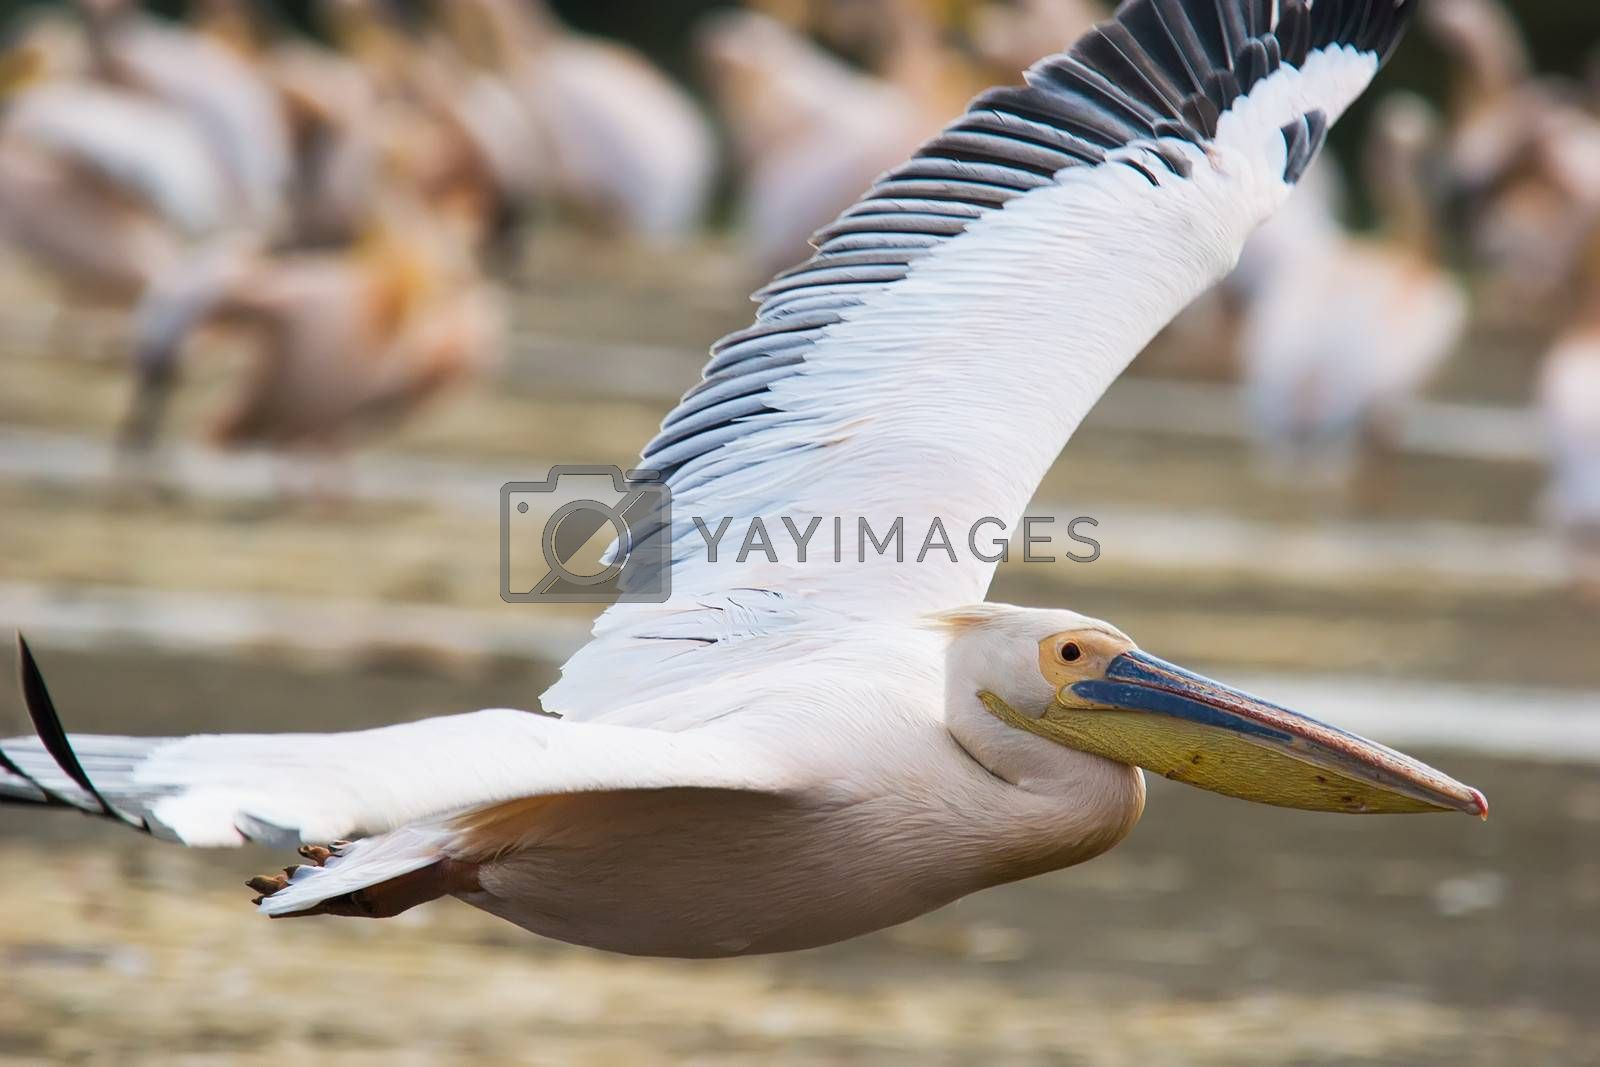 Royalty free image of Great White Pelican (Pelecanus onocrotalus) by ajn